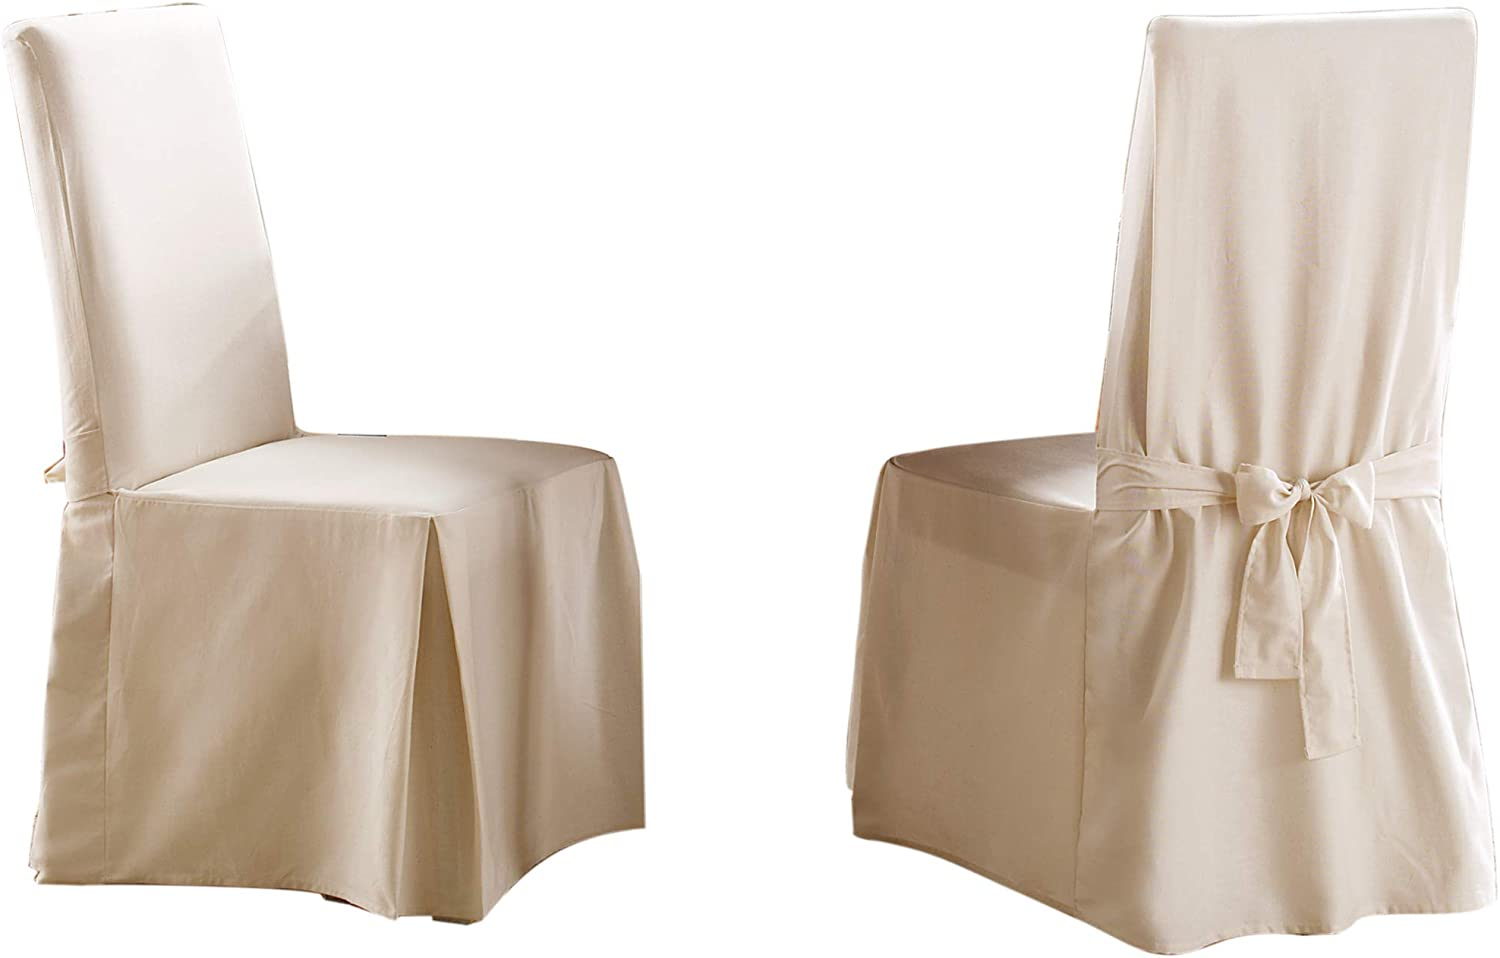 SureFit Long Dining Chair Slipcover - Cotton Duck - Up To 42 Inches Tall - Machine Washable - 100% Cotton - Natural